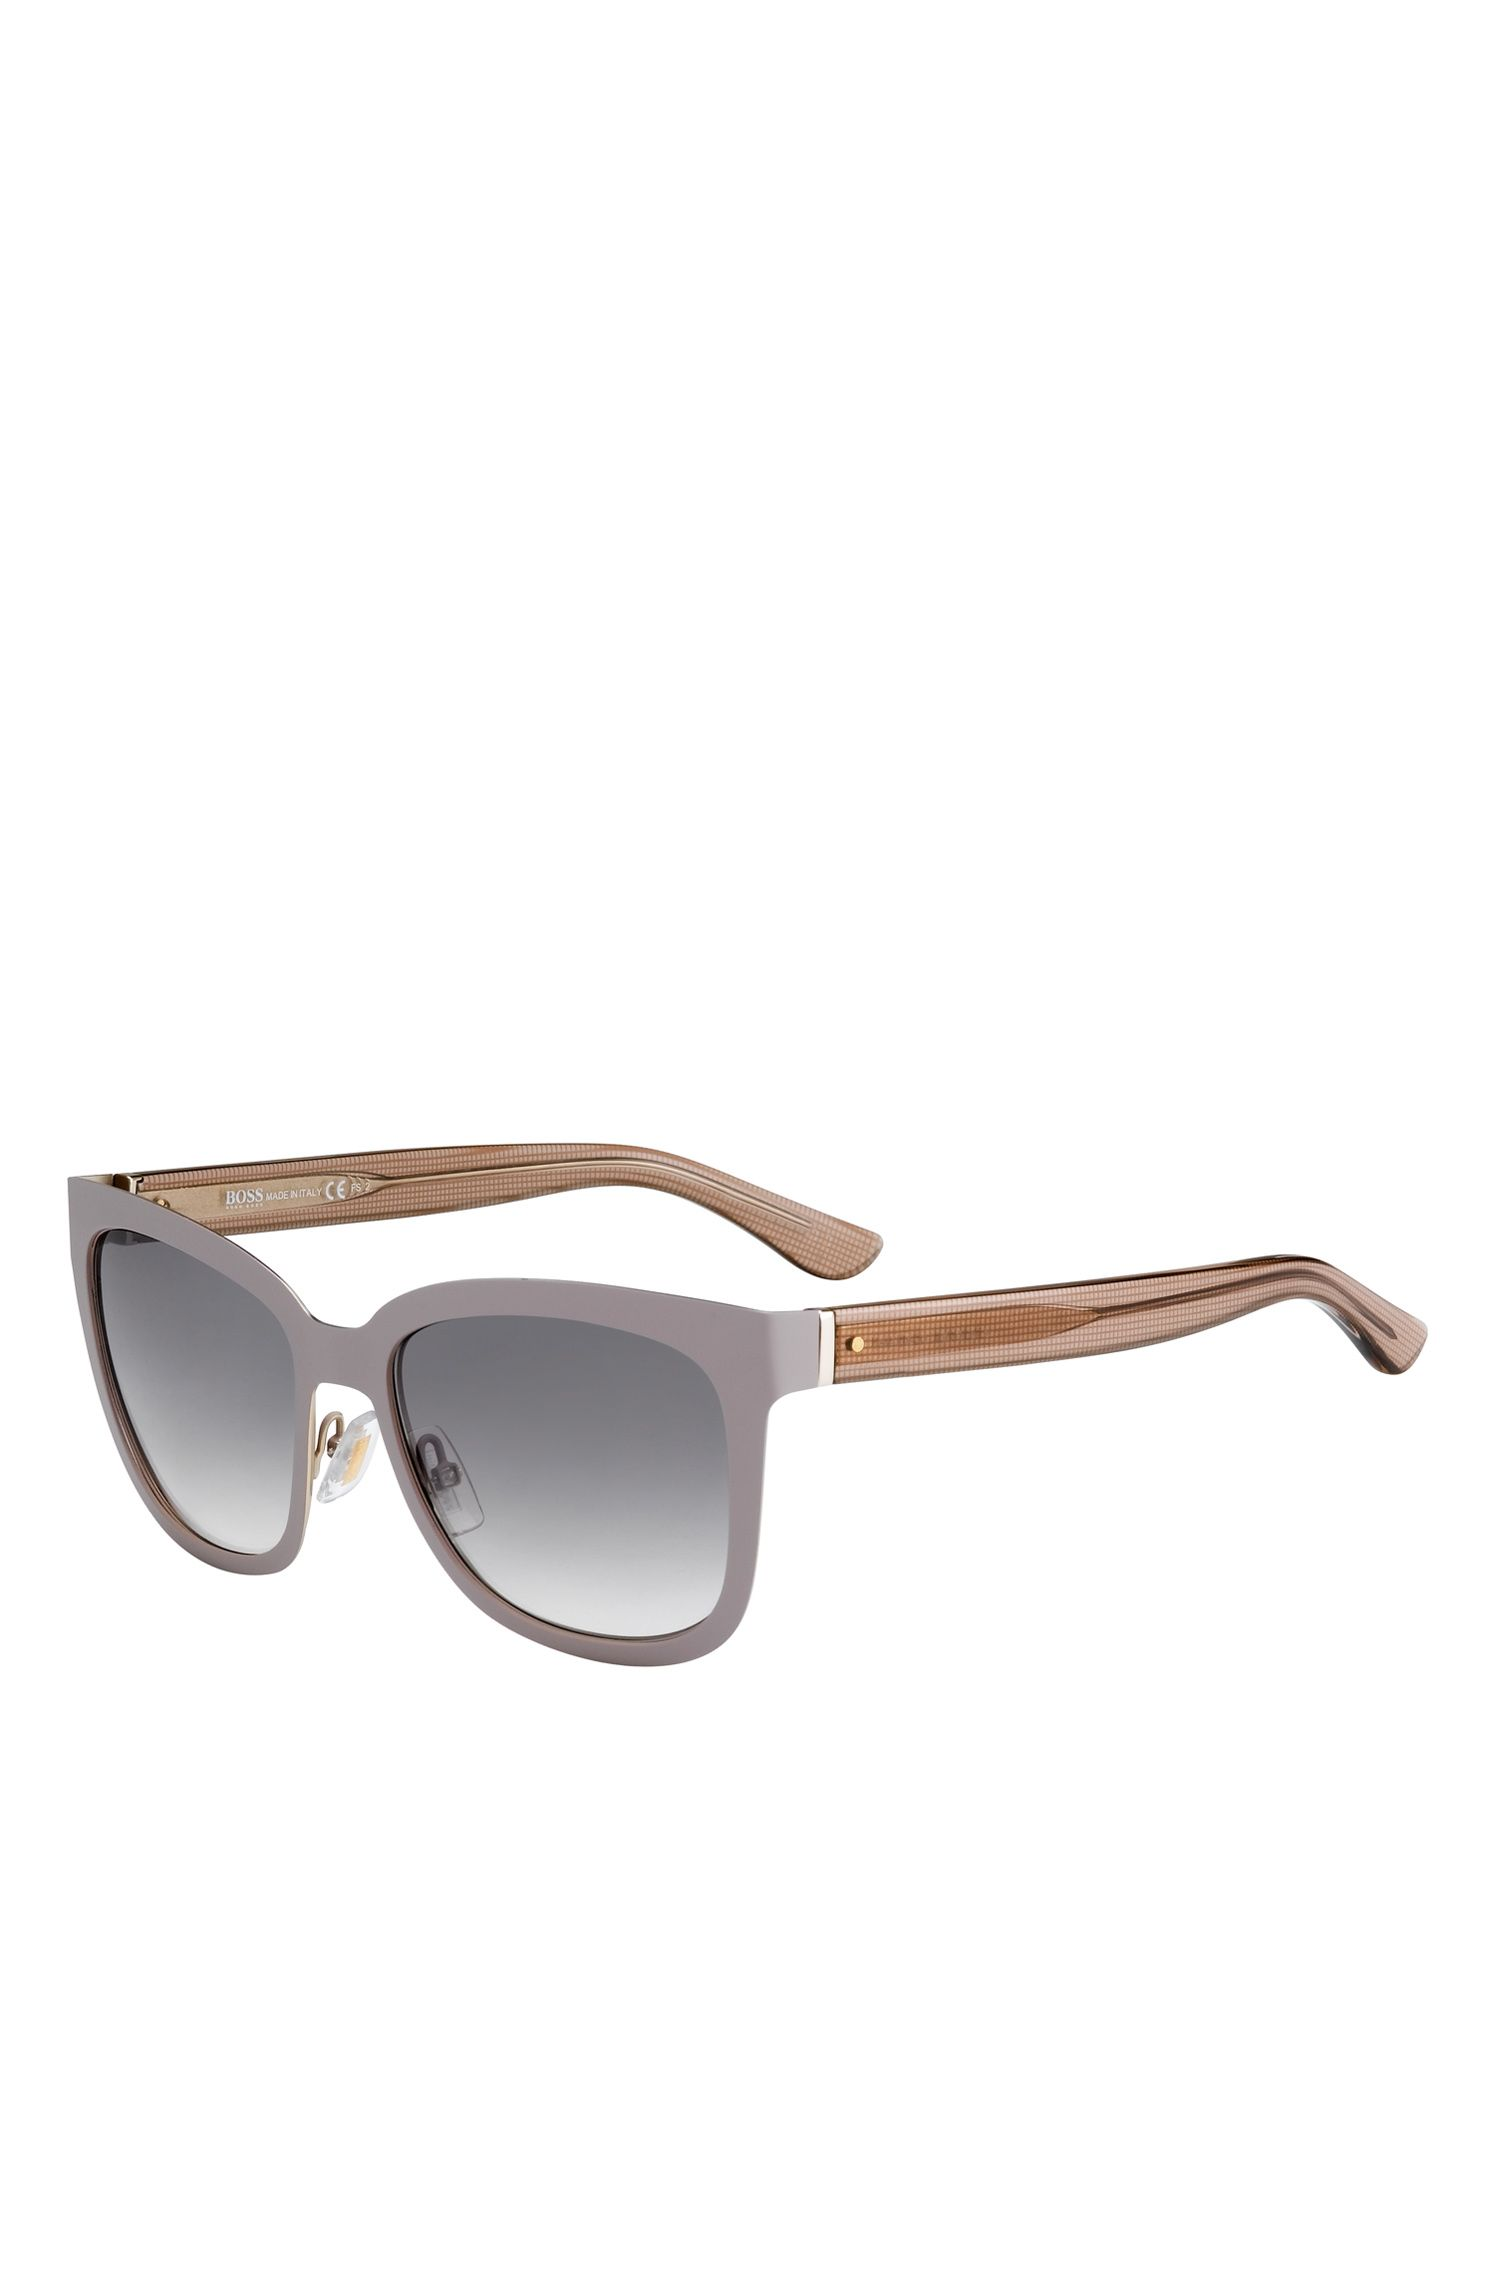 Gray Gradient Lens Rectangular Sunglasses | BOSS 676S